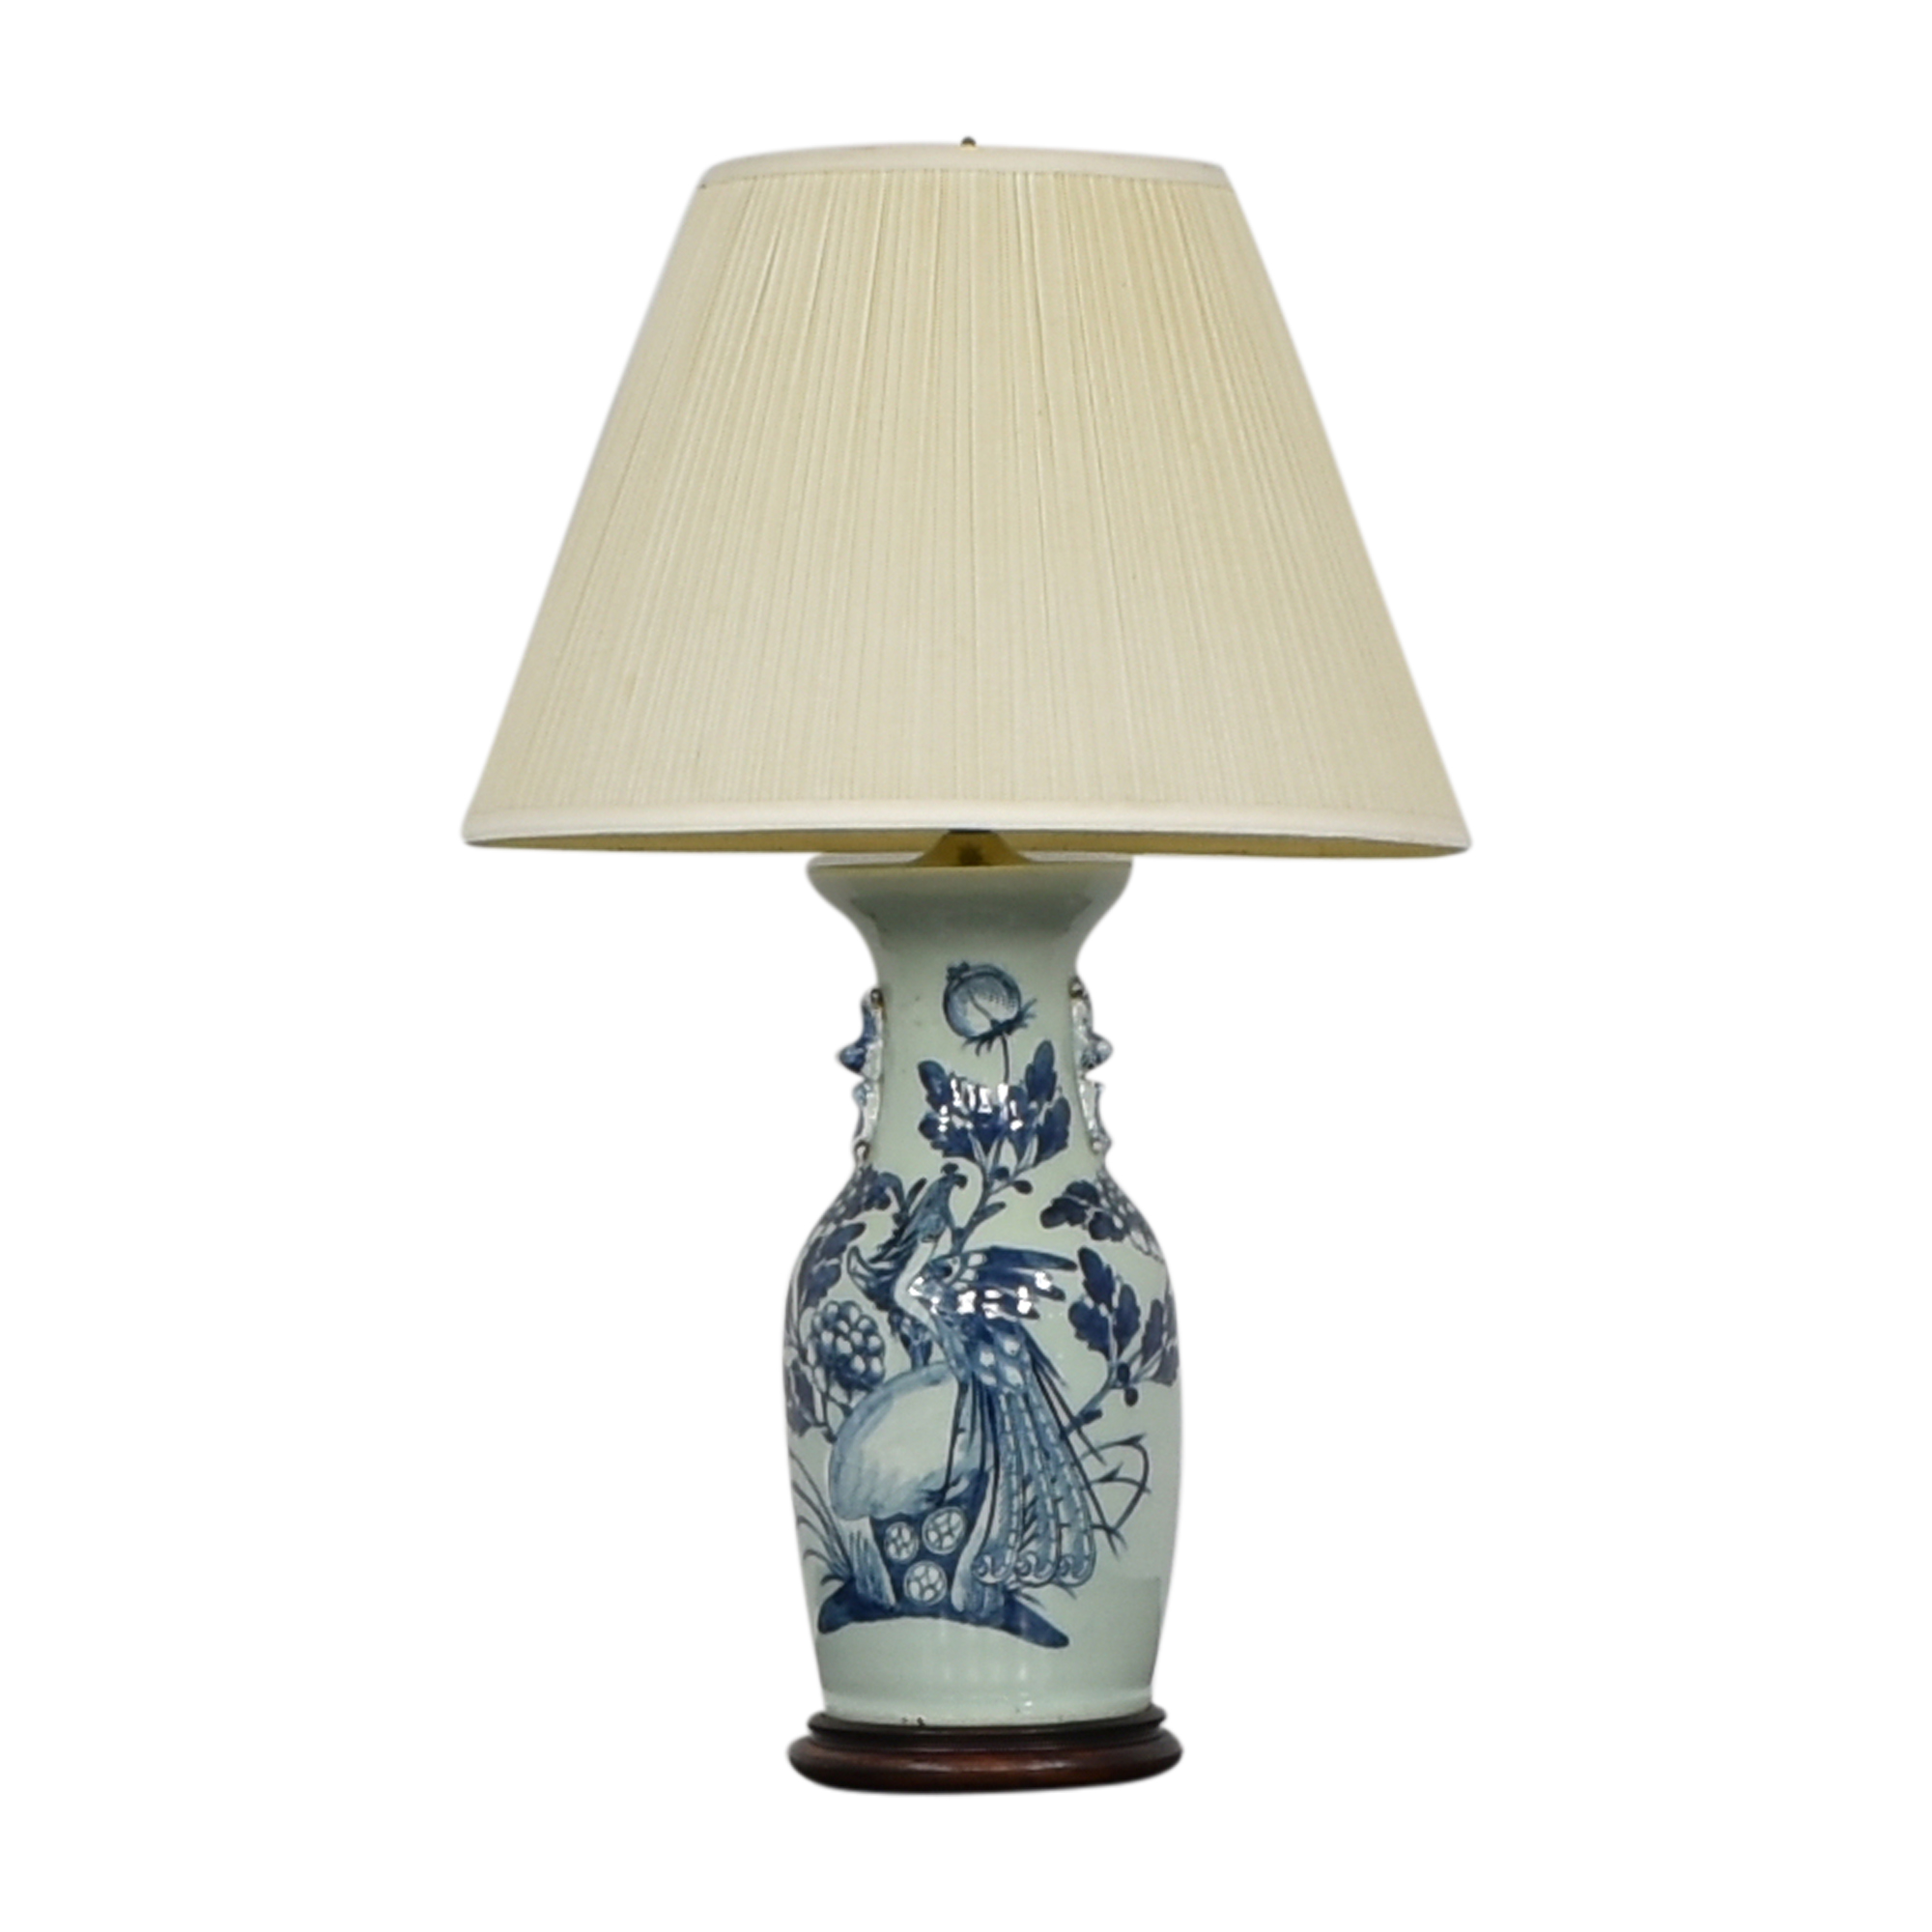 Vase-Style Table Lamp / Lamps